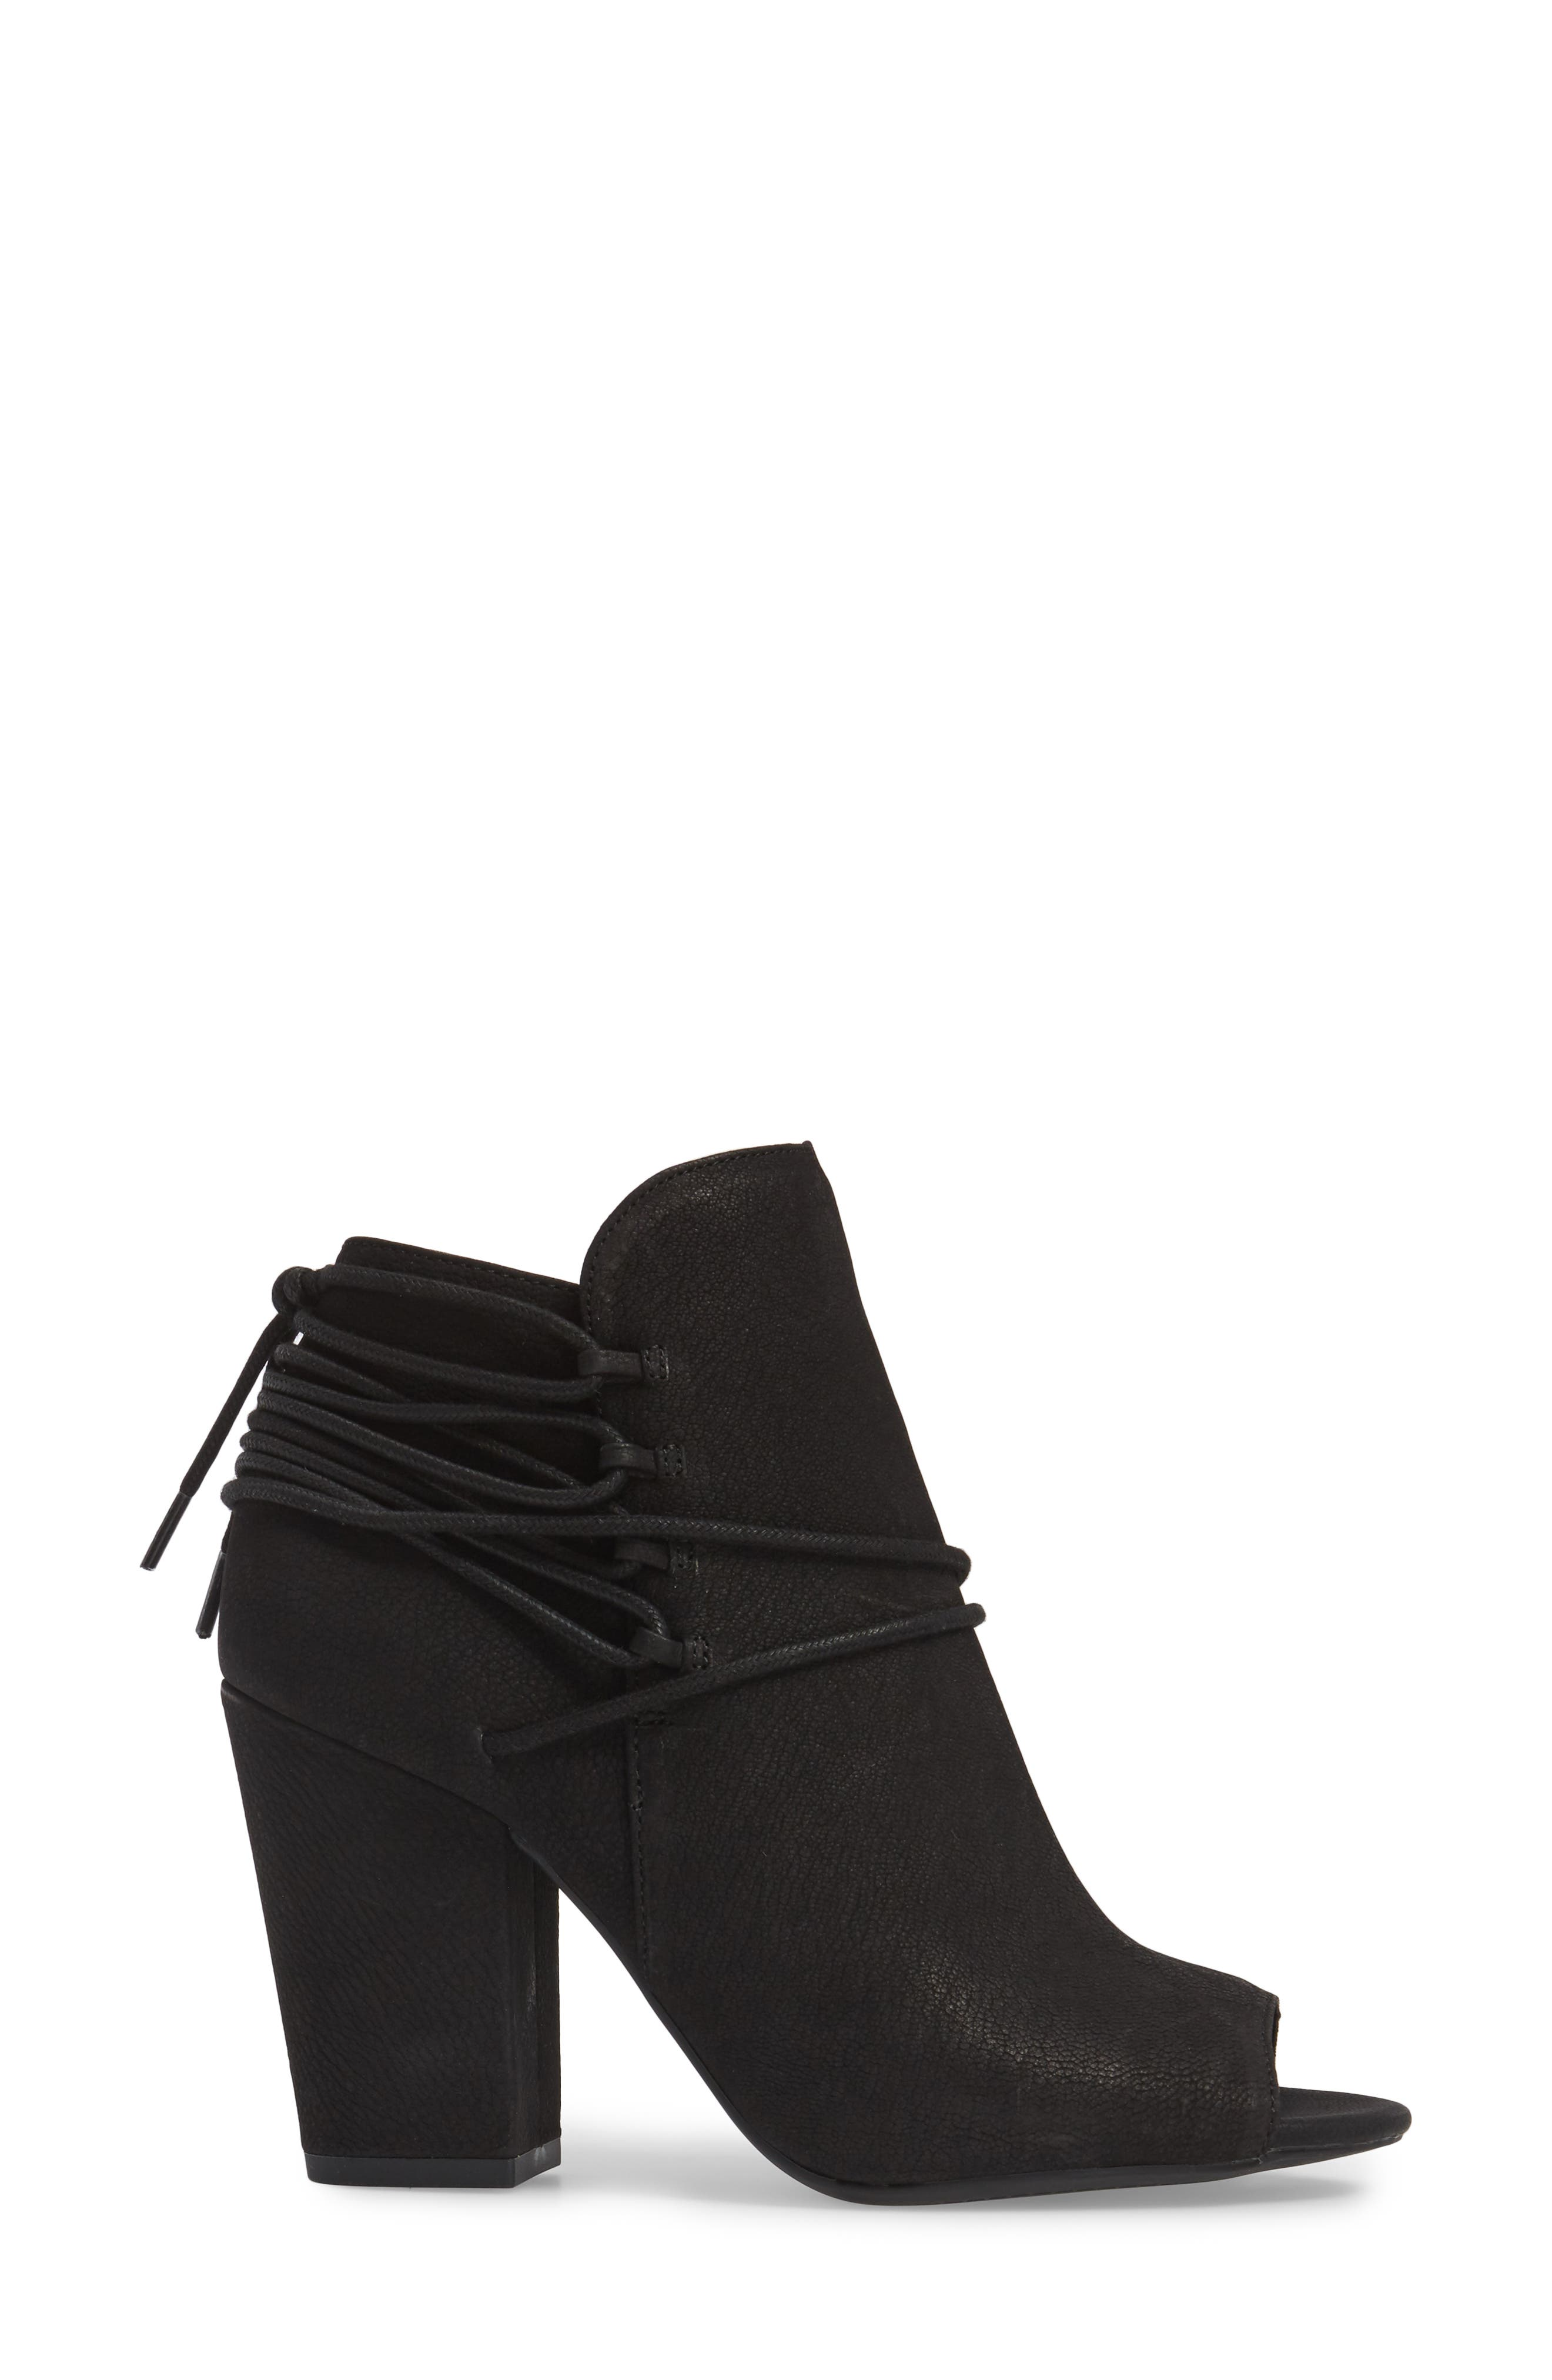 Alternate Image 3  - Jessica Simpson Remni Peep Toe Bootie (Women)